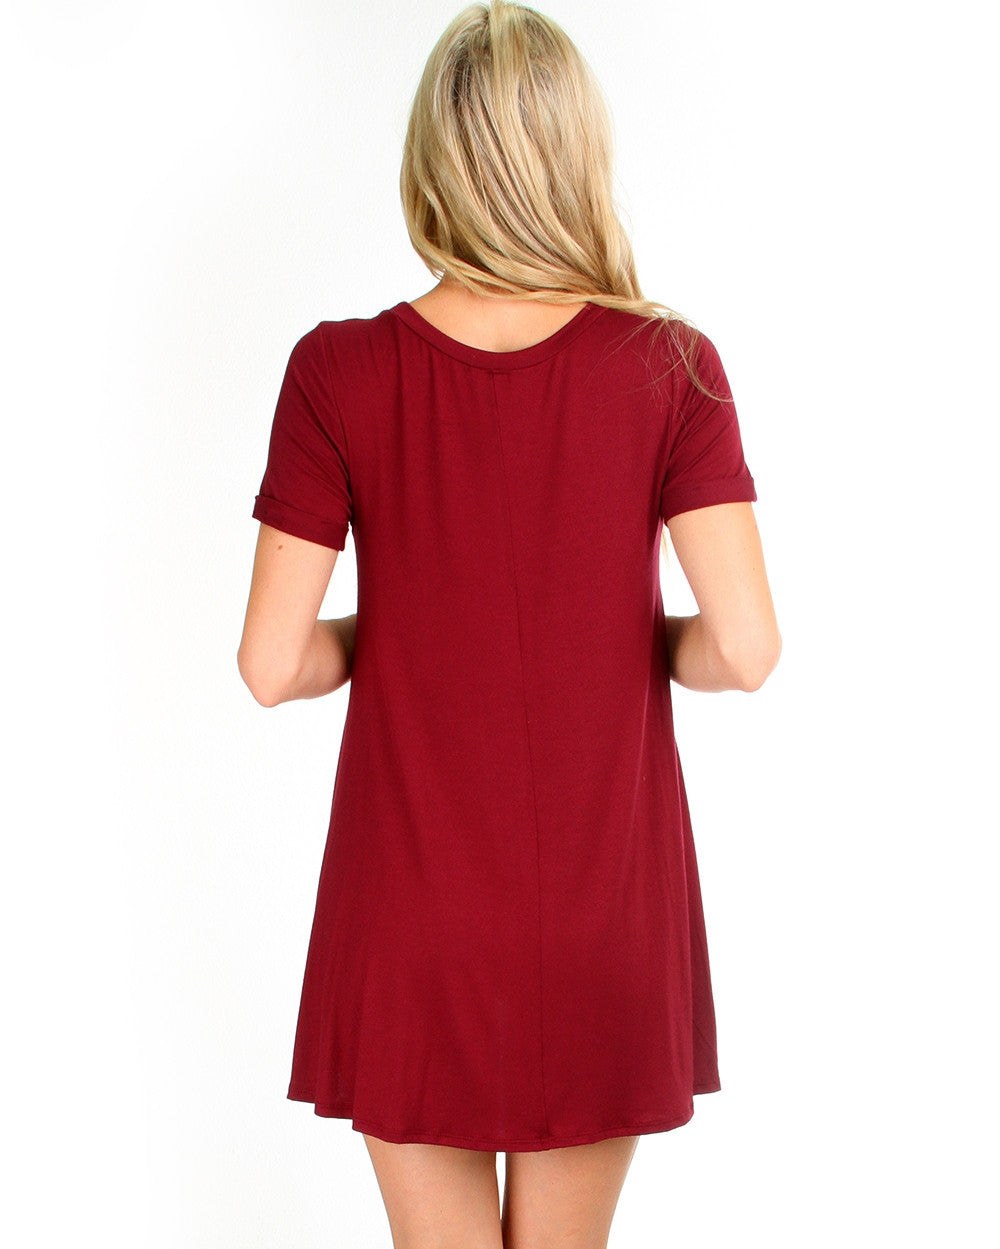 Reporting For Cutie T-Shirt Dress In Burgundy